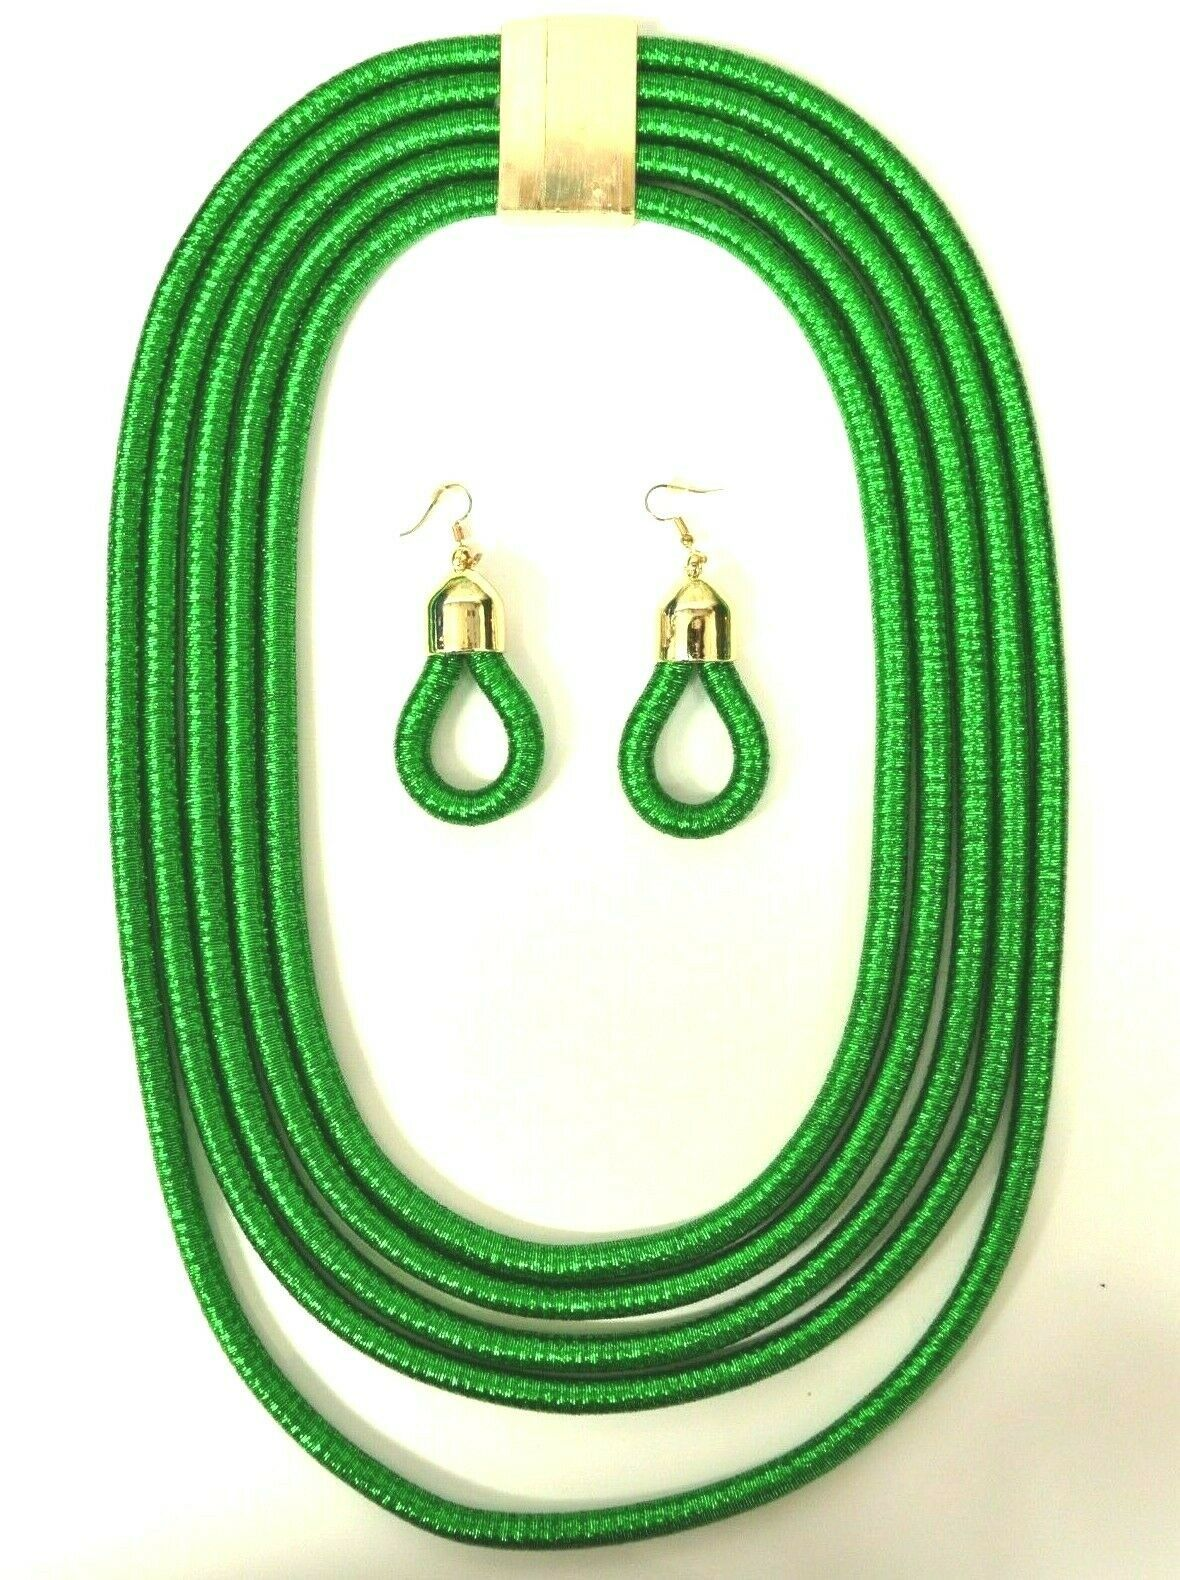 Primary image for STATEMENT BOHO CHUNKY COIL ROPE MULTI LAYER MAGNETIC NECKLACE EARRING SET GREEN